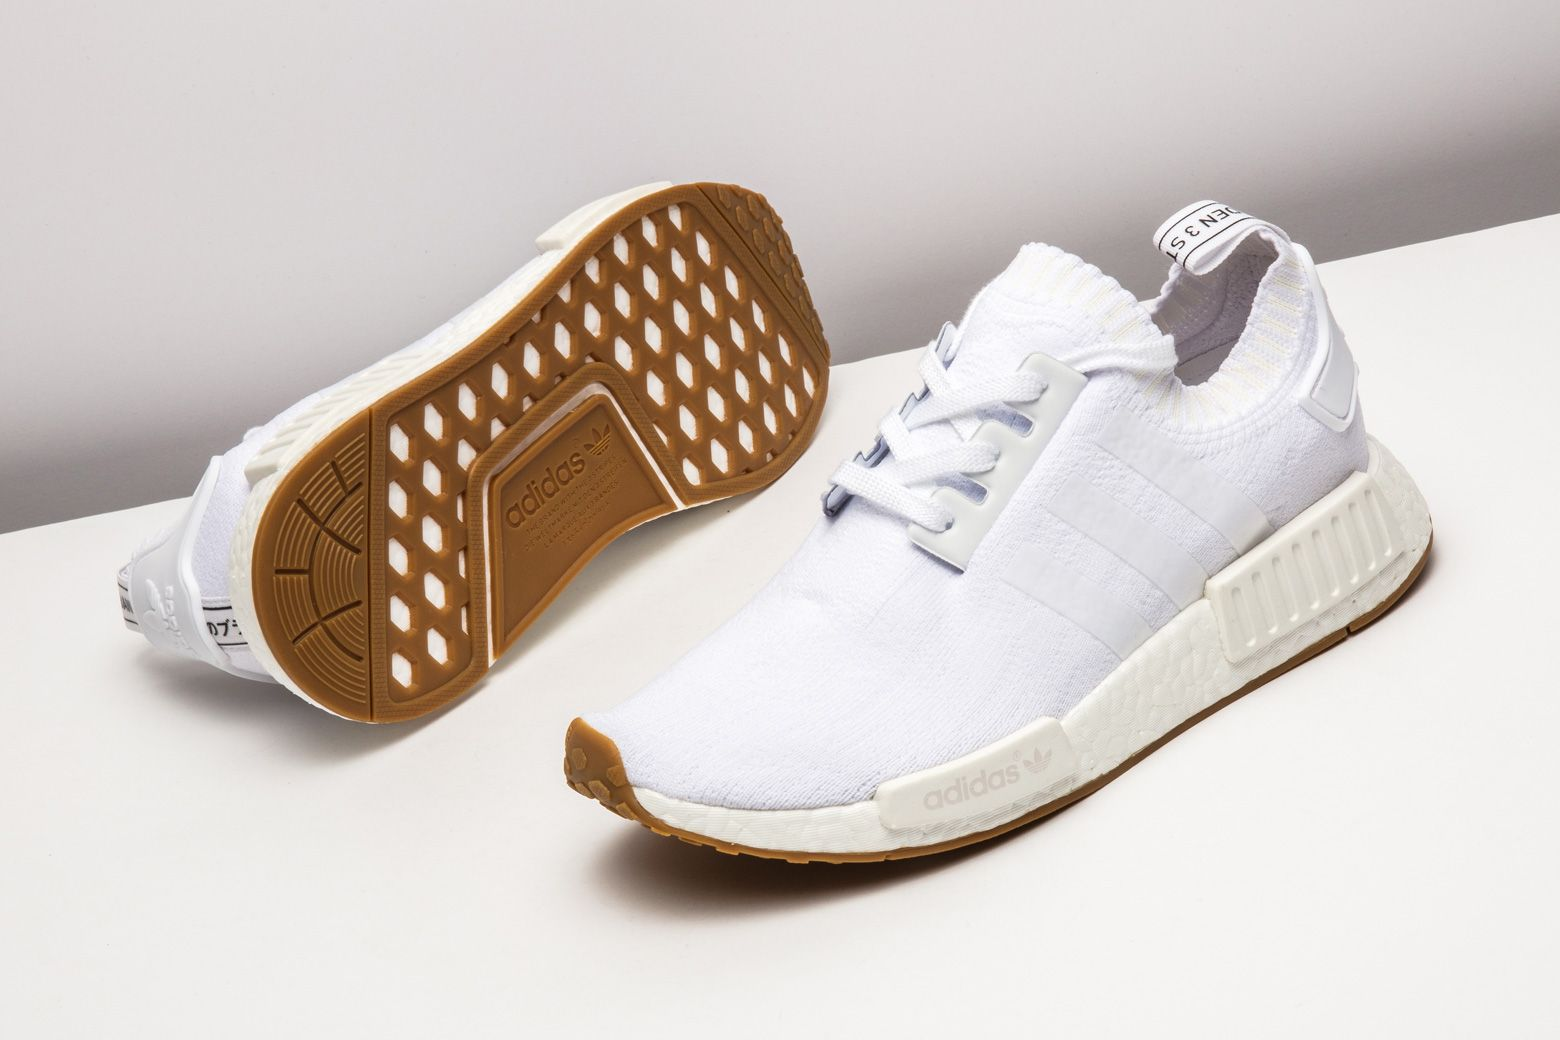 5f440c24bc806 adidas keeps it clean with a pristine white upper and gum sole on this NMD  Primeknit